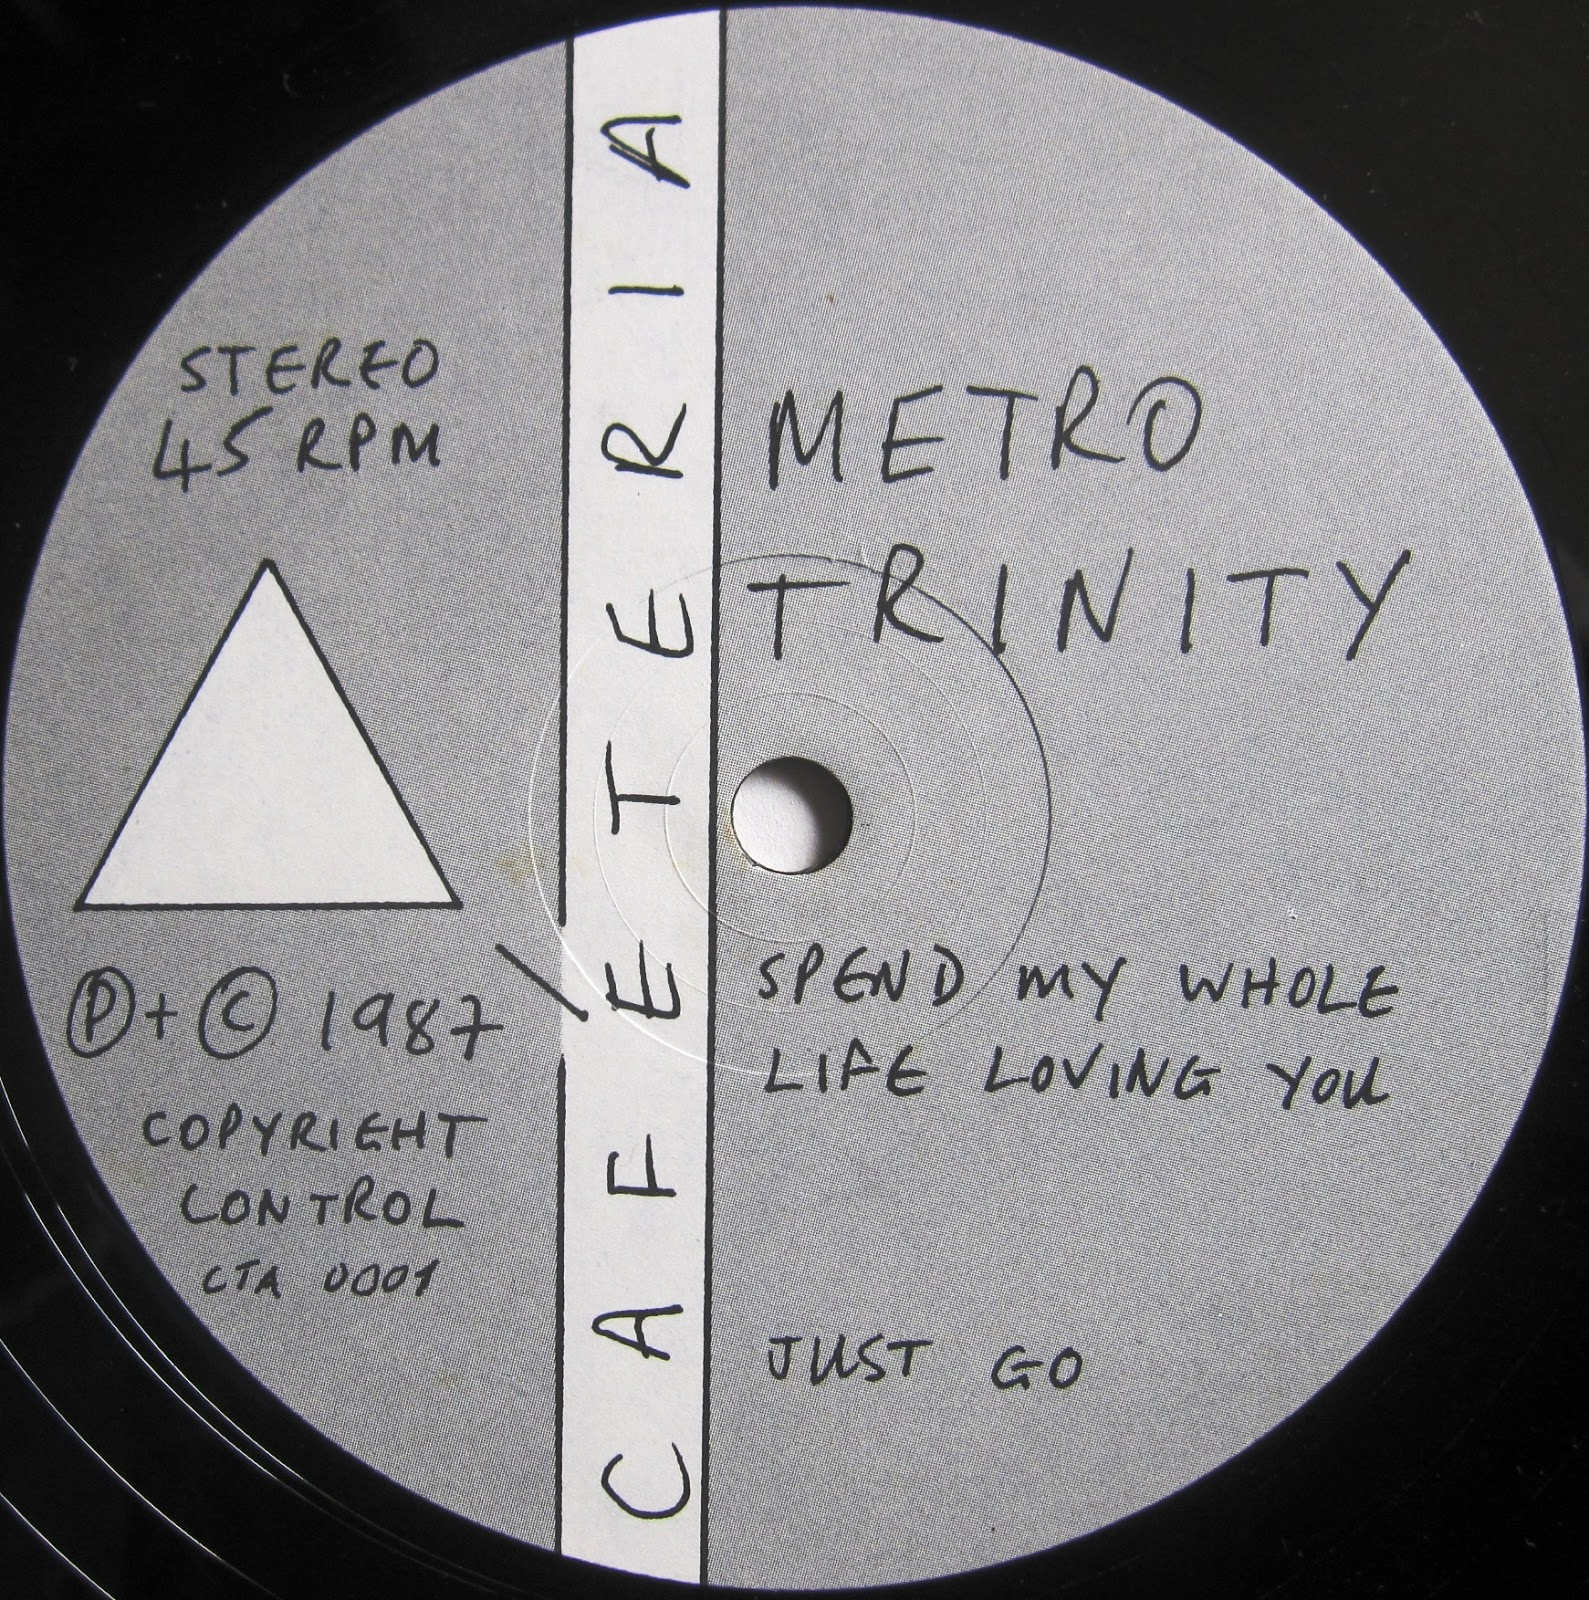 Metro Trinity Die Young